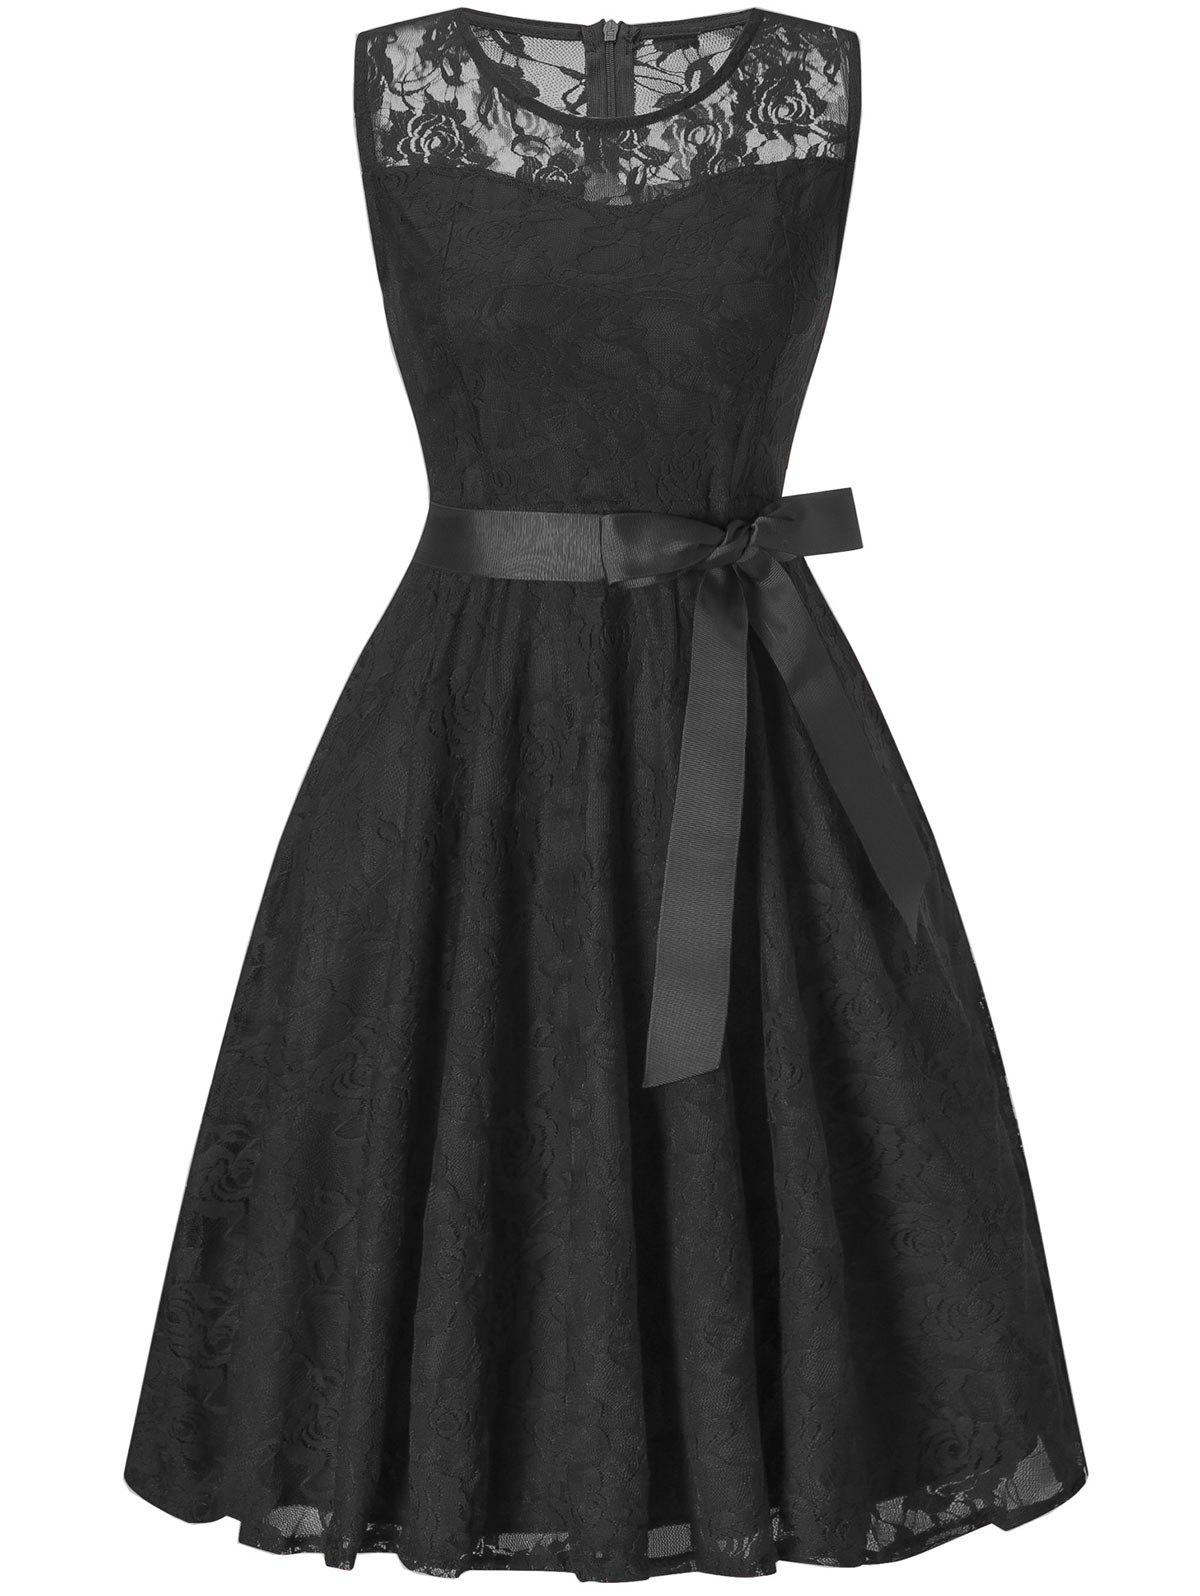 Sleeveless Swing Lace Party DressWOMEN<br><br>Size: XL; Color: BLACK; Style: Brief; Material: Polyester; Silhouette: A-Line; Dresses Length: Knee-Length; Neckline: Round Collar; Sleeve Length: Sleeveless; Embellishment: Bowknot; Pattern Type: Floral; With Belt: Yes; Season: Fall,Spring; Weight: 0.3500kg; Package Contents: 1 x Dress  1 x Belt; Occasion: Bridesmaid,Cocktail &amp; Party,Evening,Night Out,Pageant Dresses,Party;